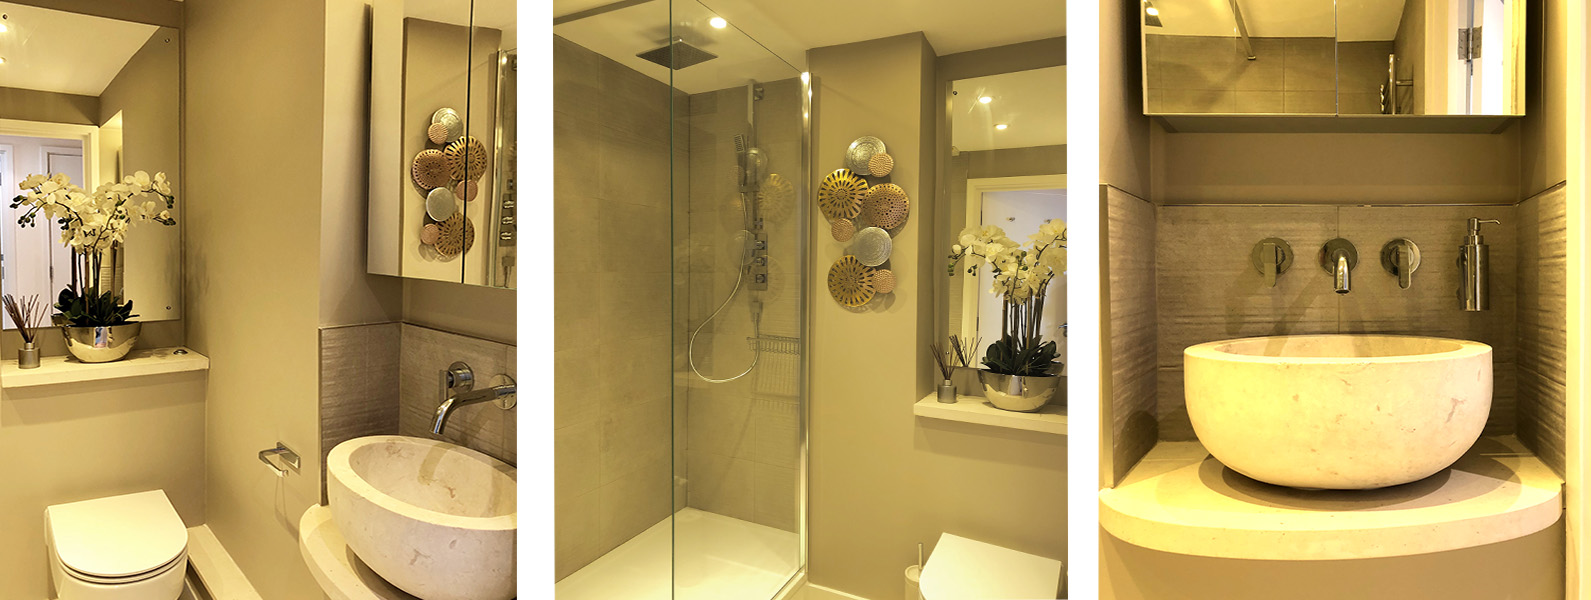 Guest bathroom interior design and styling details by Moji Salehi at Moji Interiors in Hove.